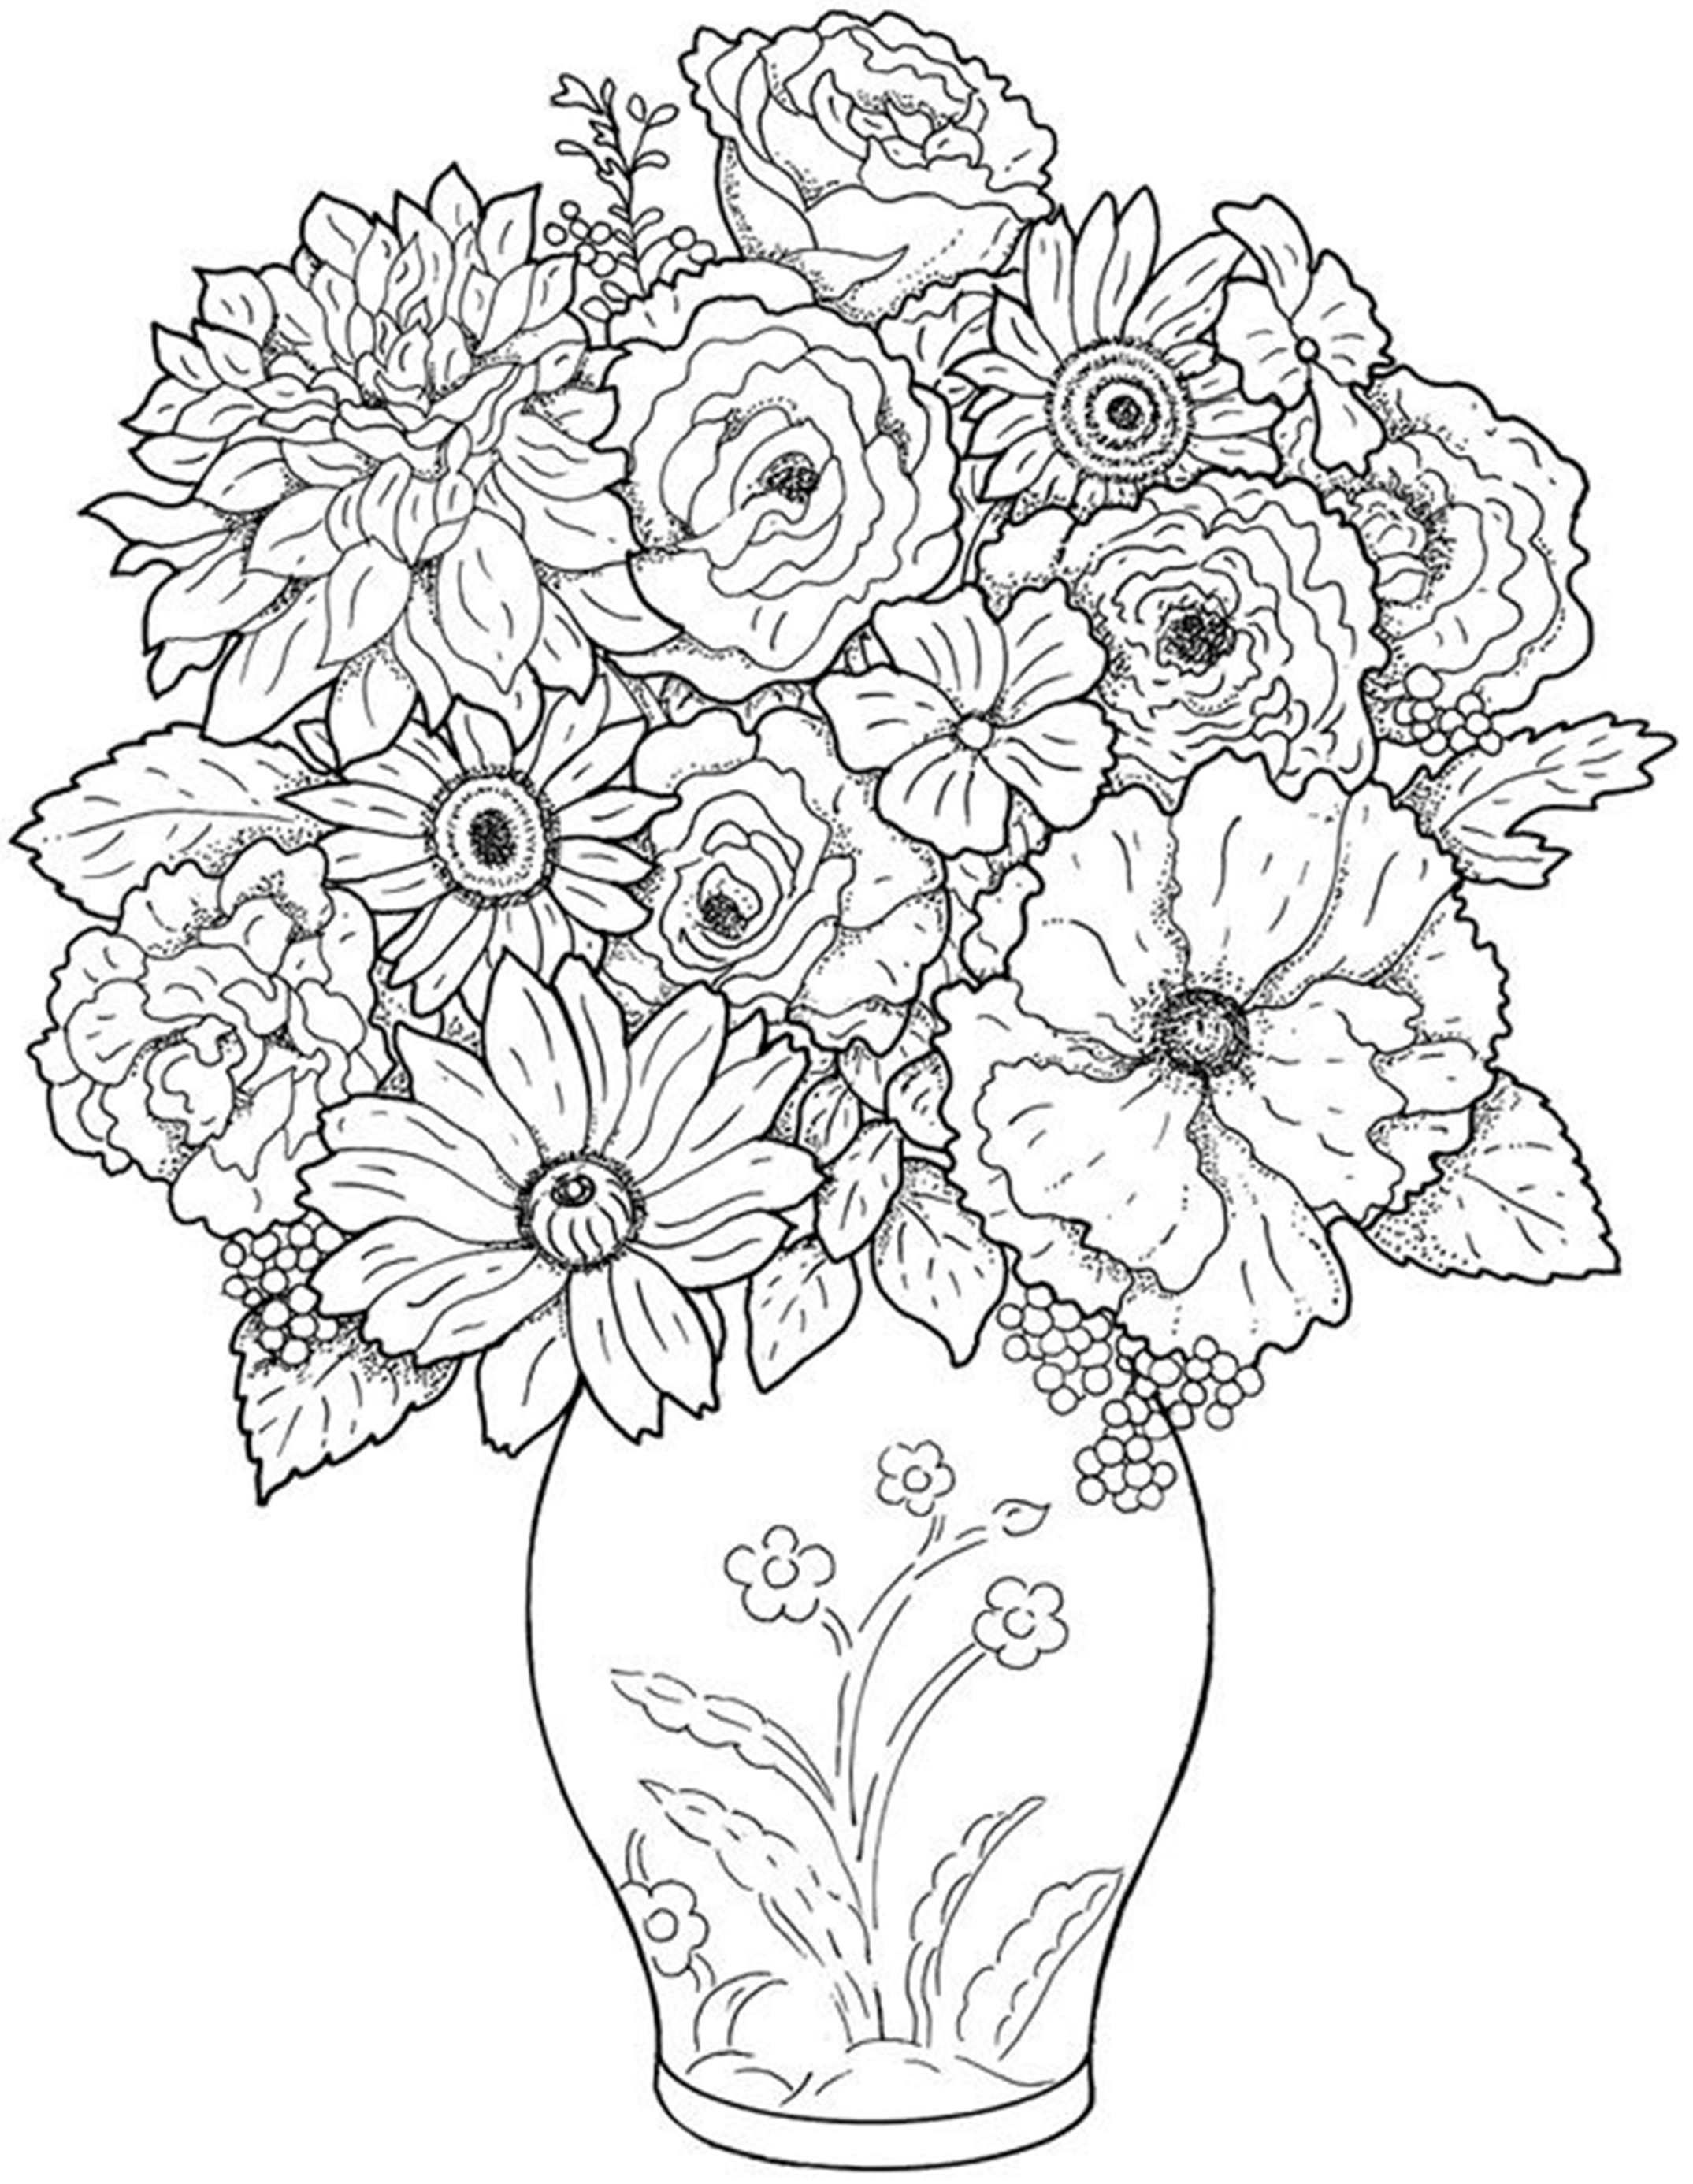 Flower coloring in pages - Free Vase Flower Coloring Pages